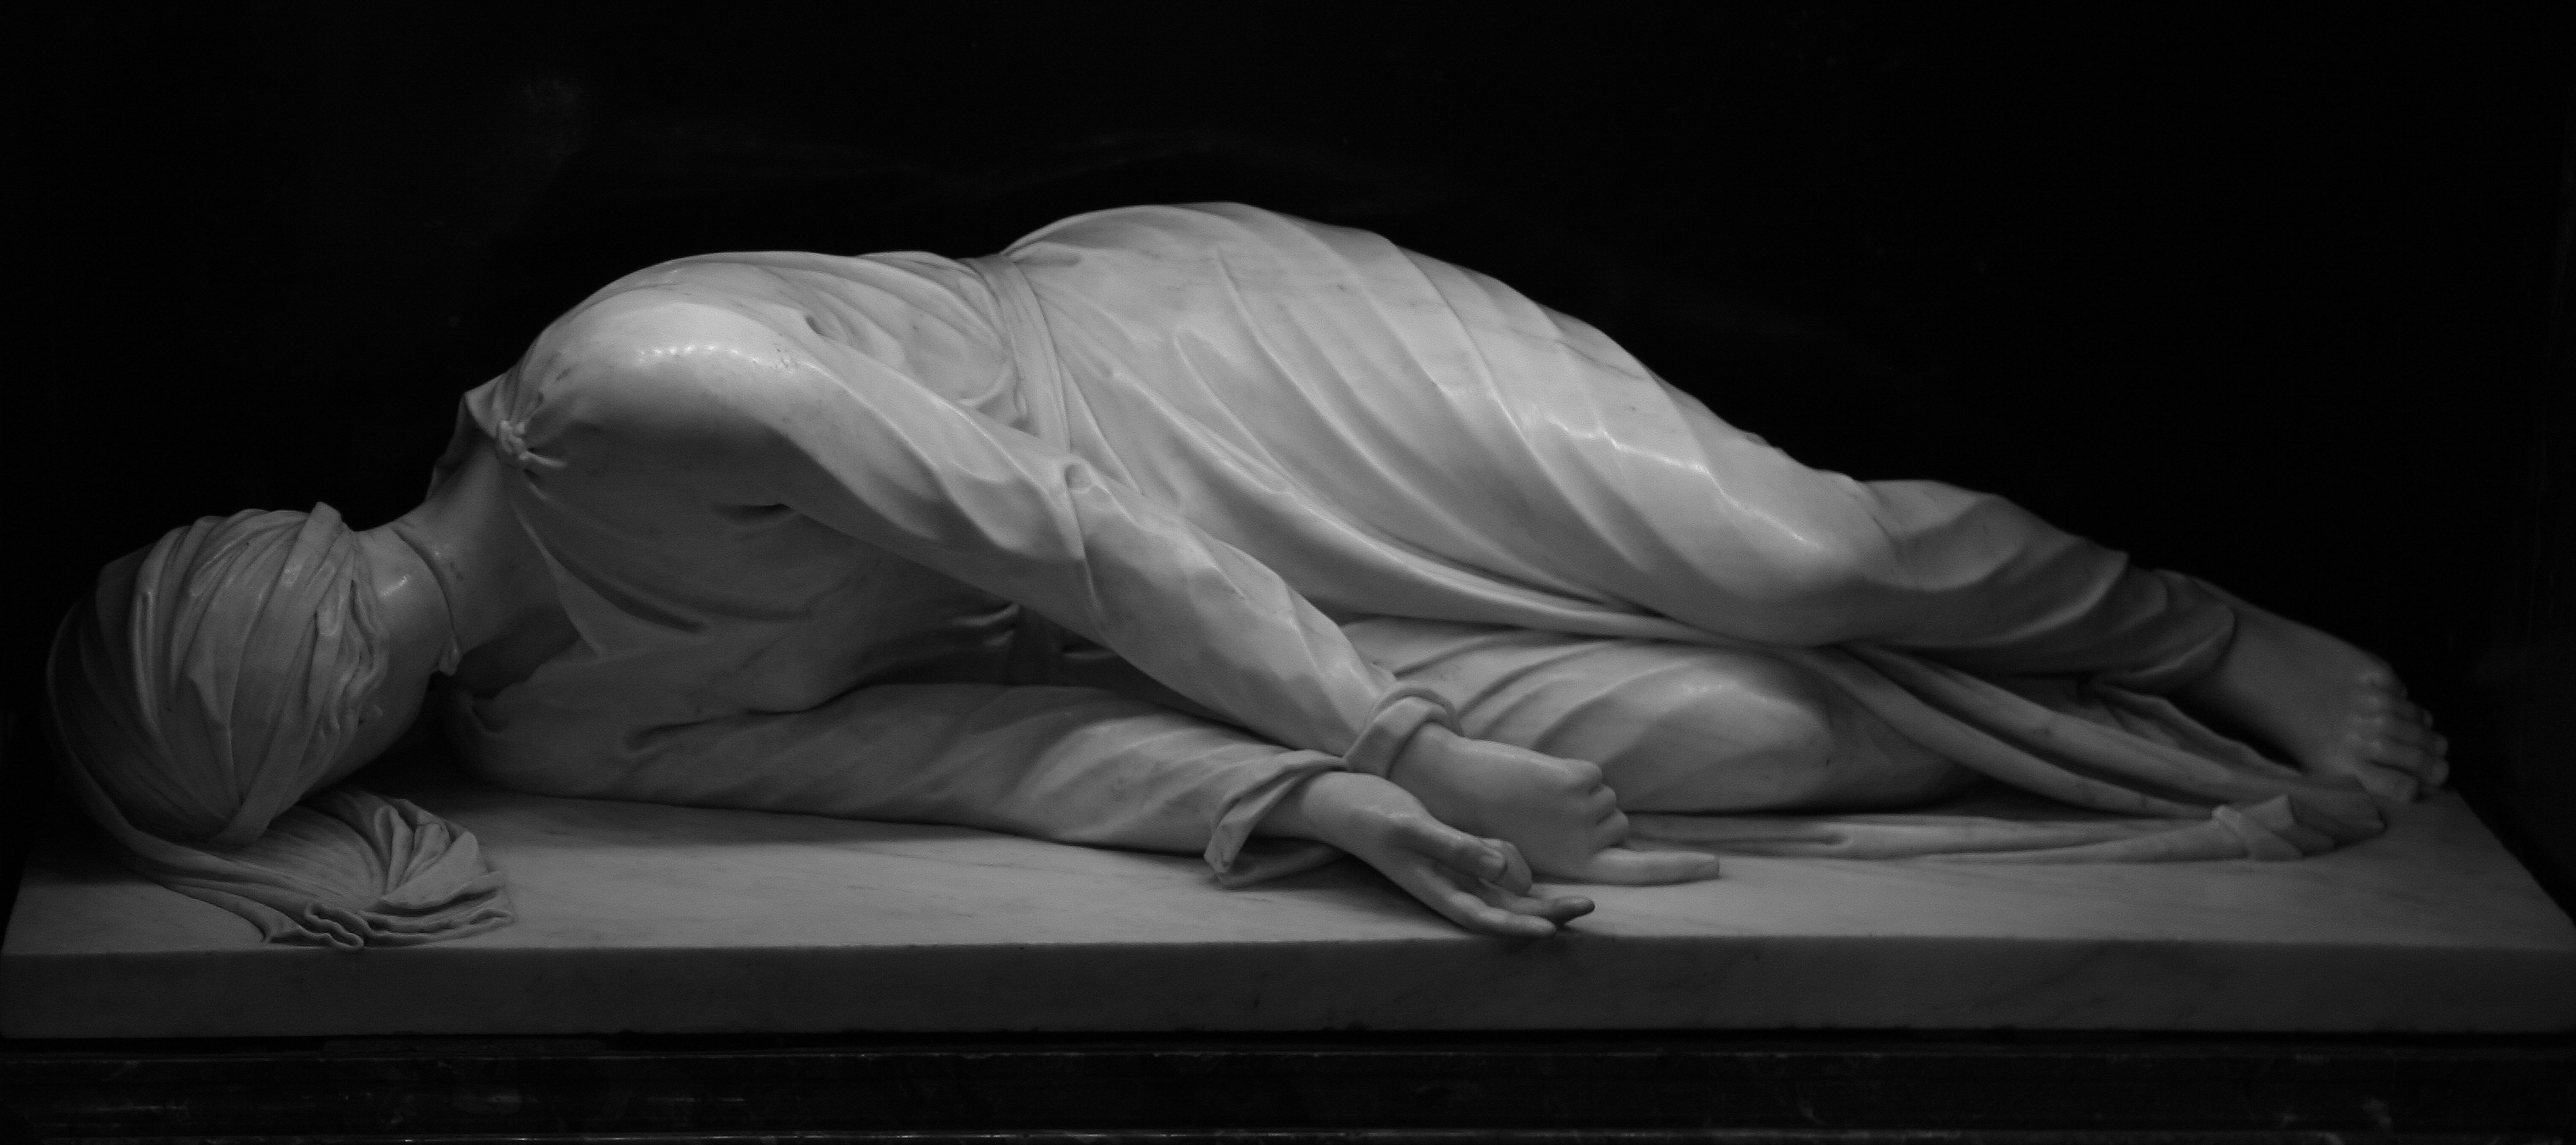 The Martyrdom of Saint Cecilia by Stefano Maderno